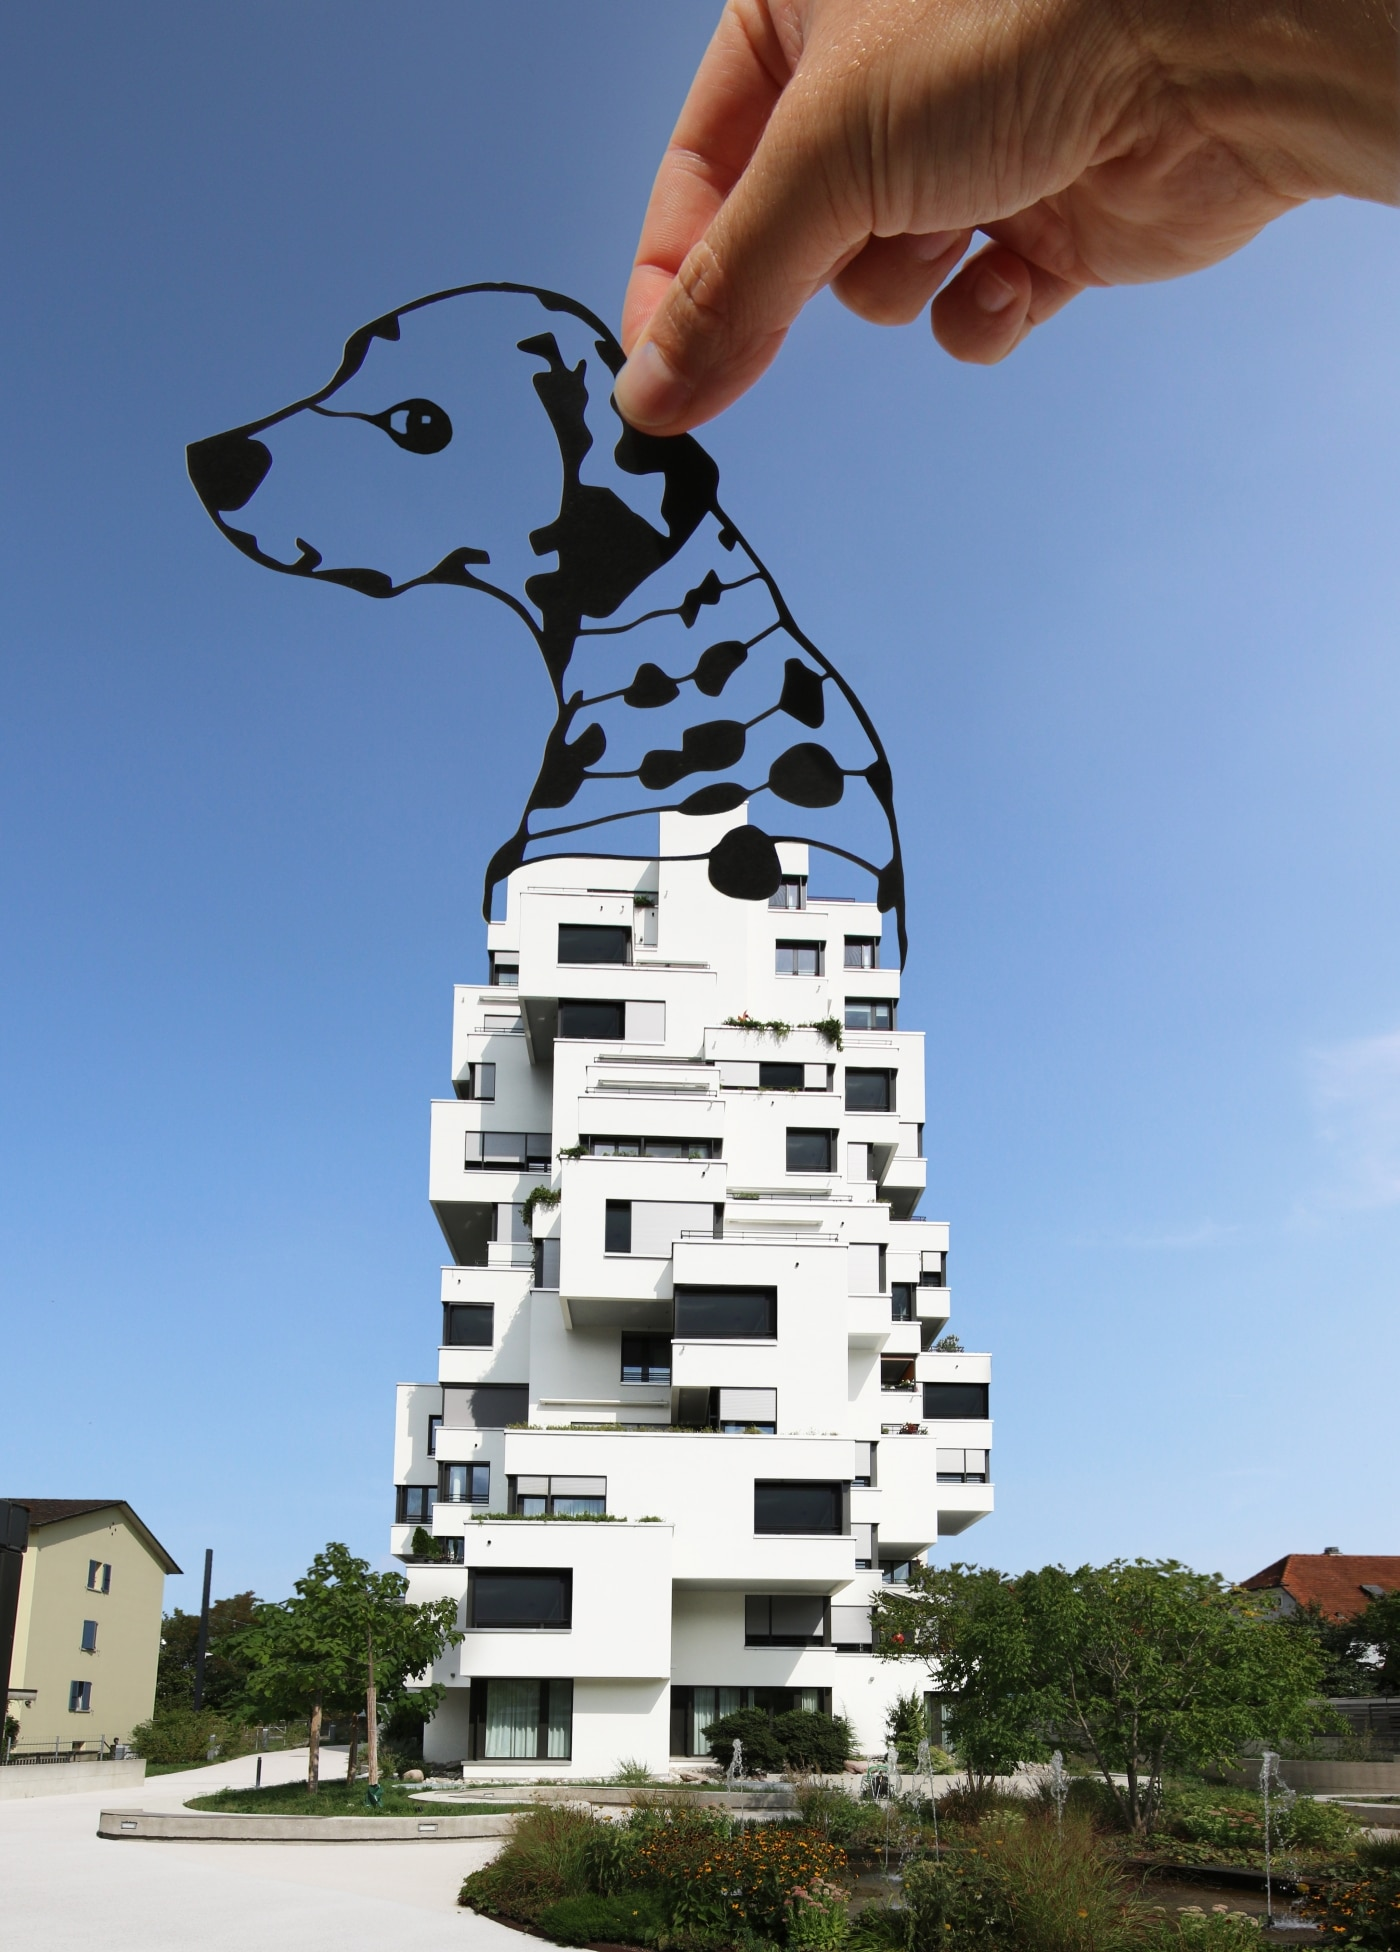 Paper Cutting Art by Paperboyo Rich McCor